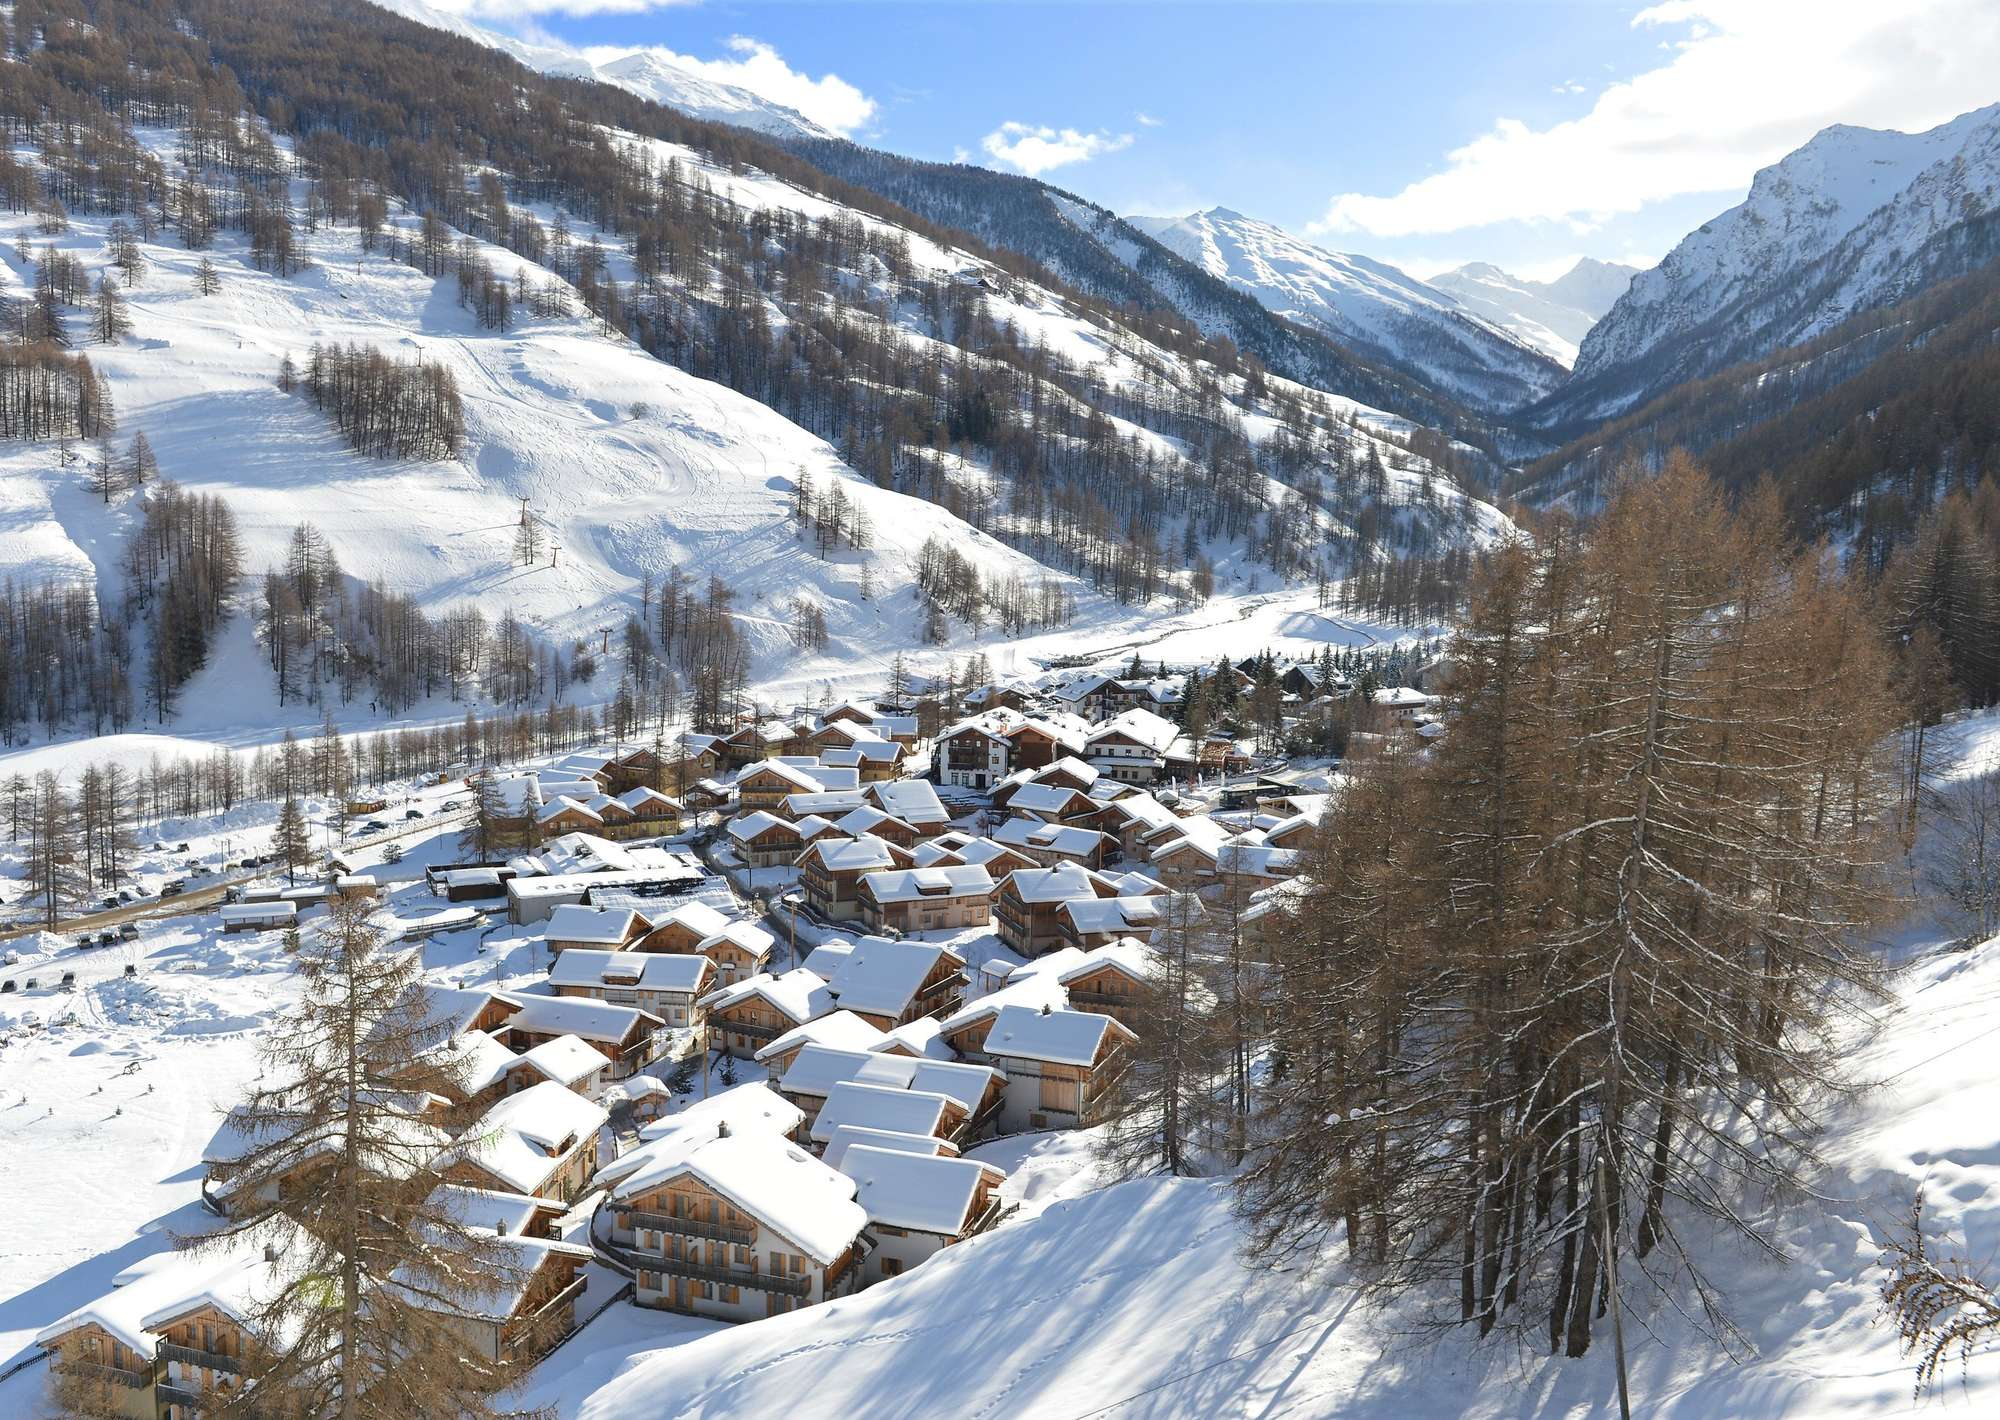 Resort Pragelato in Via Lattea Club Med